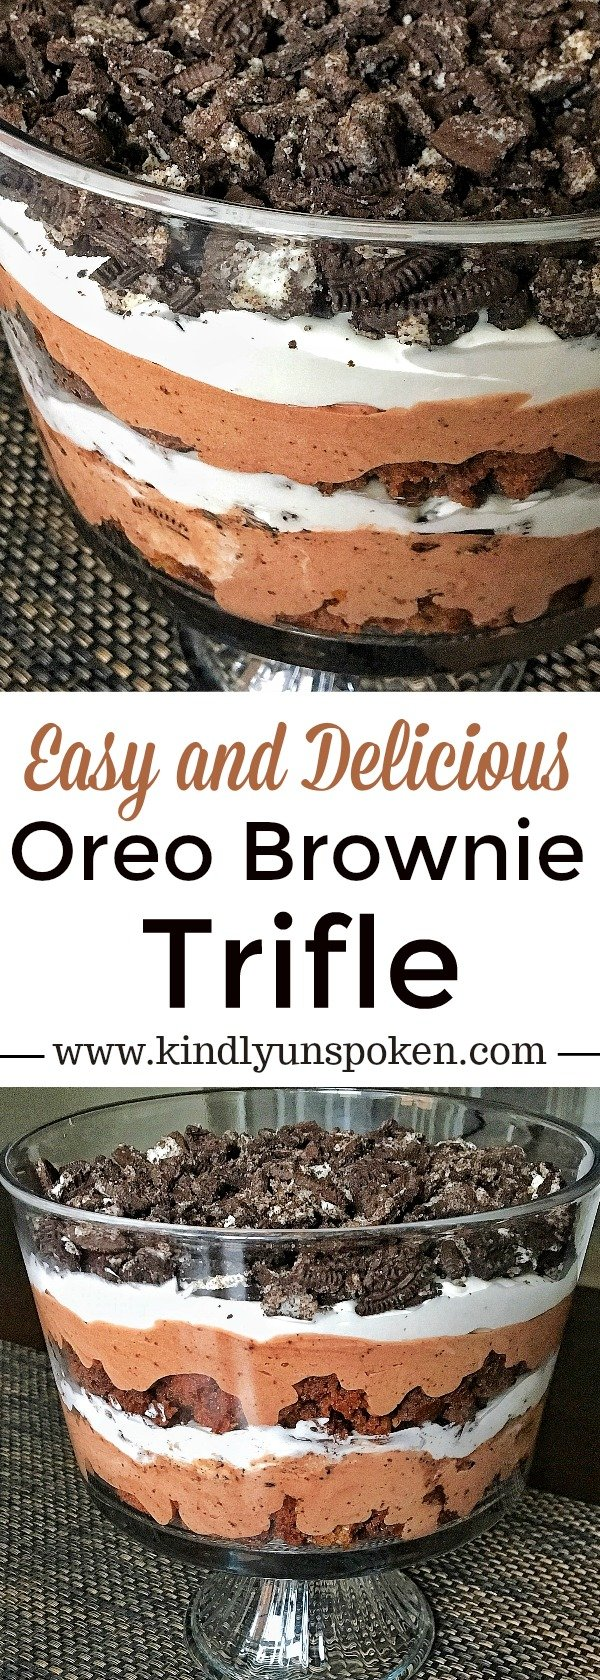 This Easy and Delicious Oreo Brownie Trifle is so easy to whip together and is the perfect layered dessert for entertaining with family and friends. Made with rich layers of brownie pieces, an indulgent chocolate pudding, creamy whipped topping, and yummy Oreo pieces, this brownie trifle is the ultimate chocolate lover's dream dessert! #brownietrifle #chocolatedessert #oreodessert